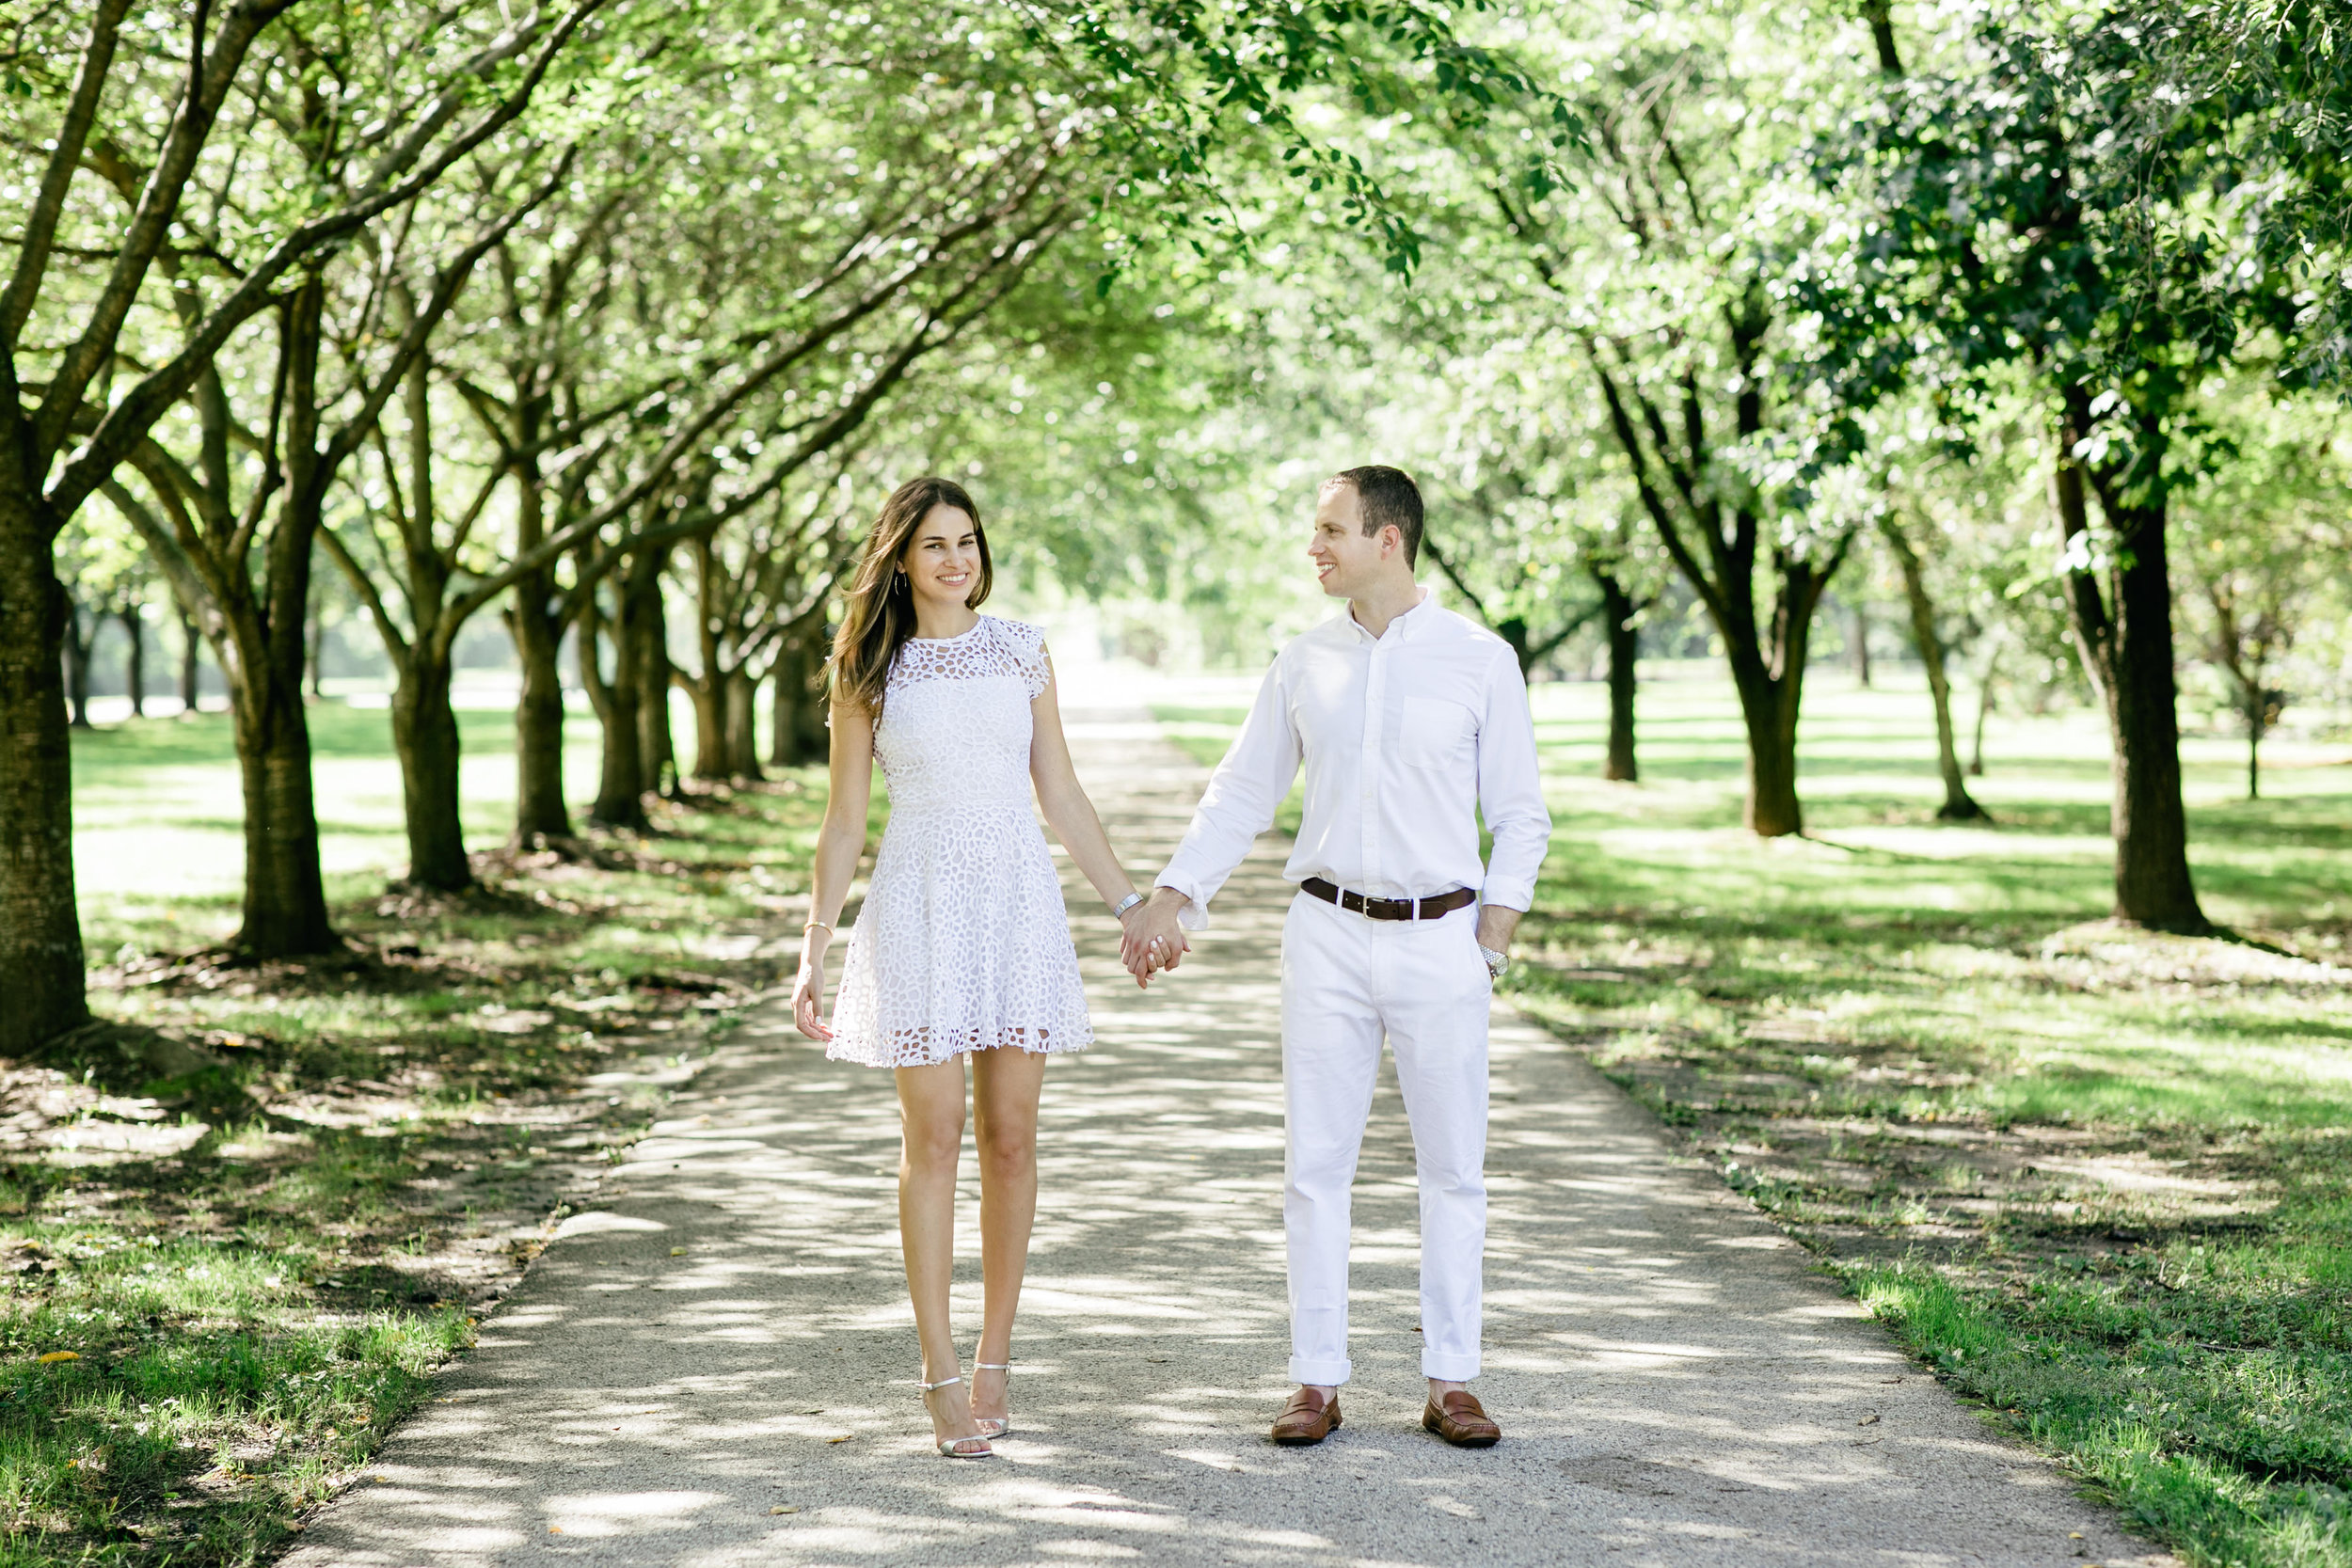 photography-family-natural-candid-engaged-fairmount-philadelphia-wedding-horticultural center-modern-lifestyle-01.JPG